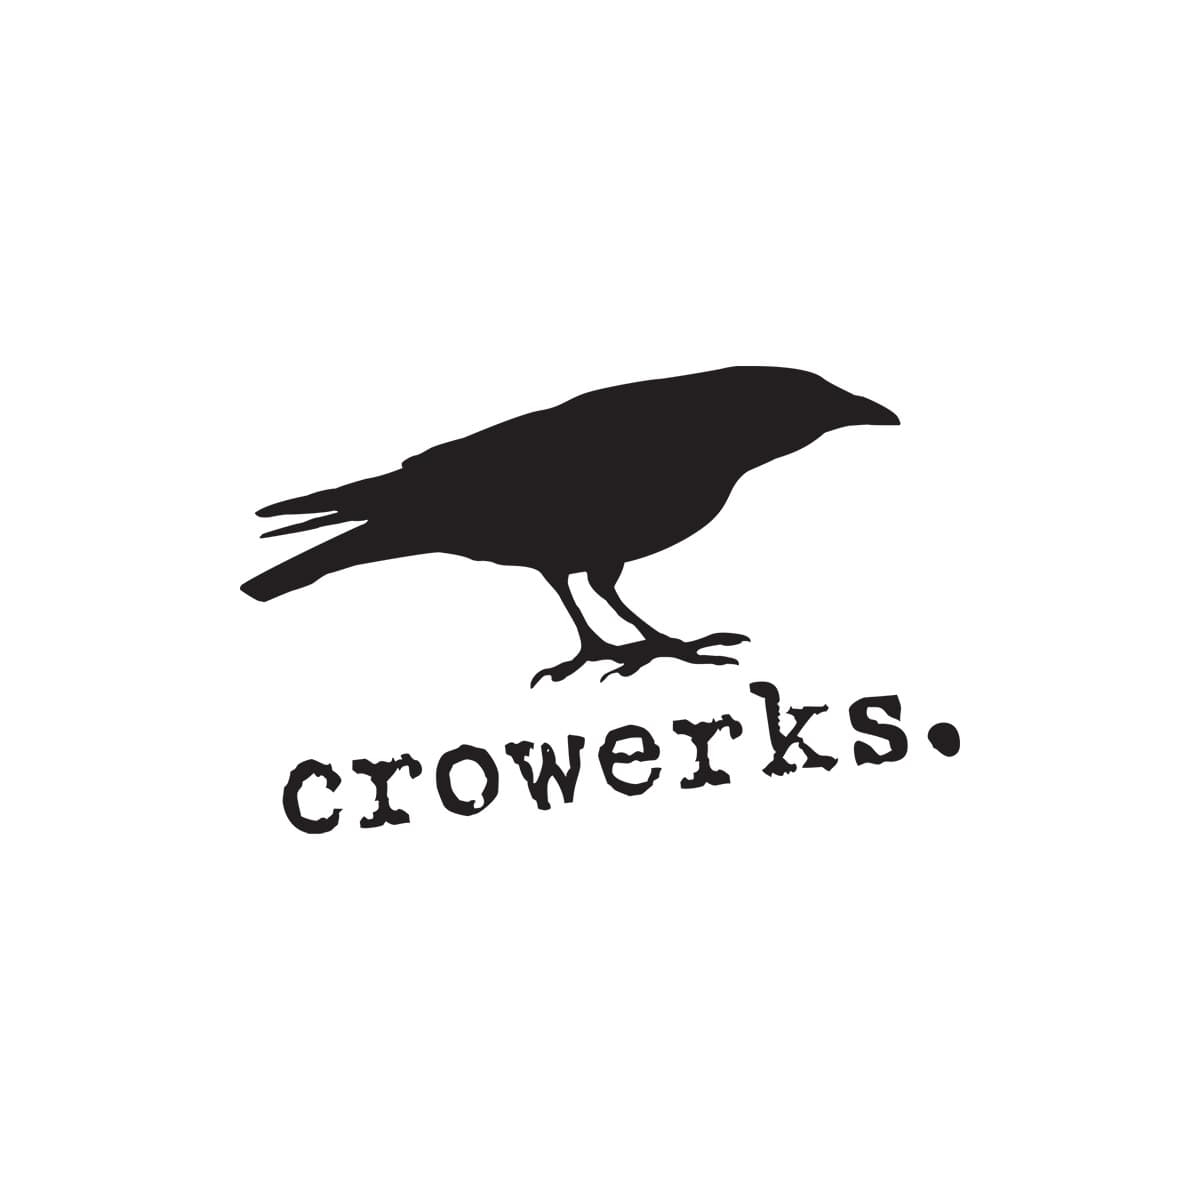 crowerks design, Agency of Record and Renown